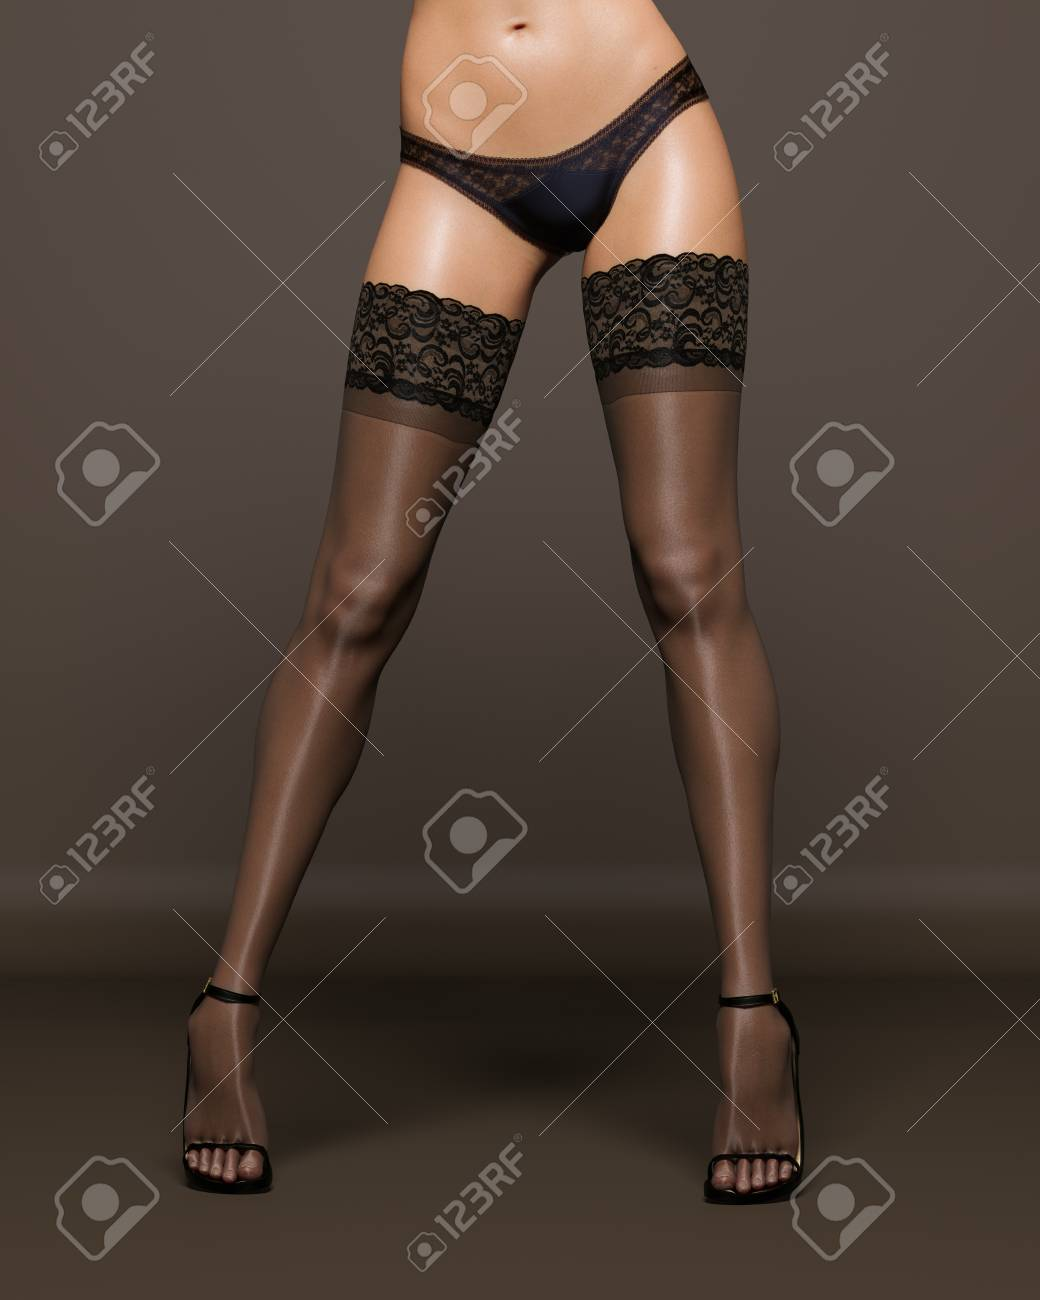 2b320e5fb 3D Beautiful female legs black stockings and panties dark background.Woman  studio photography.High